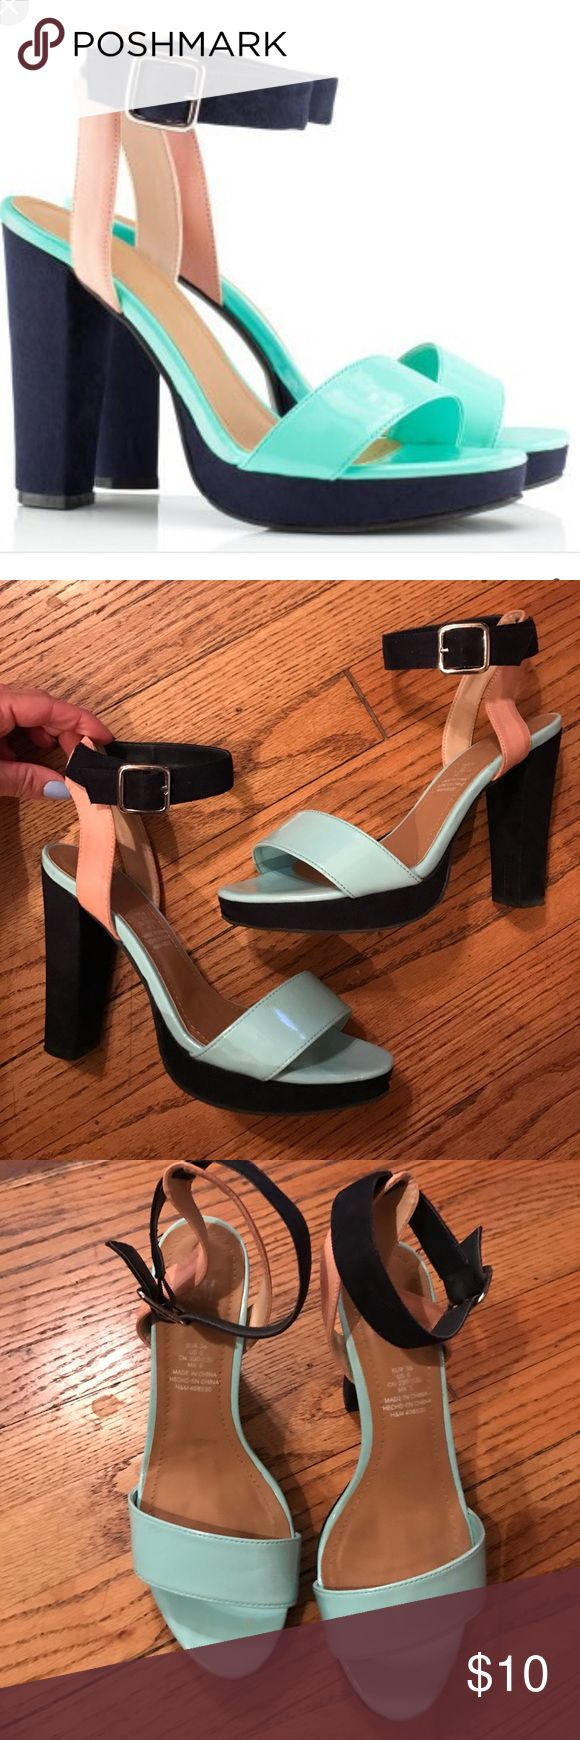 H&M mint, navy & blush suede sandals - Sz 6 H&M sandals size 36.  Previously loved, but in good condition. Faux suede, navy heel, platform and ankle strap.   Mint toe strap and foot bed.  Faux leather blush heel straps.  Cute, thick heels, very in style right now. H&M Shoes Sandals